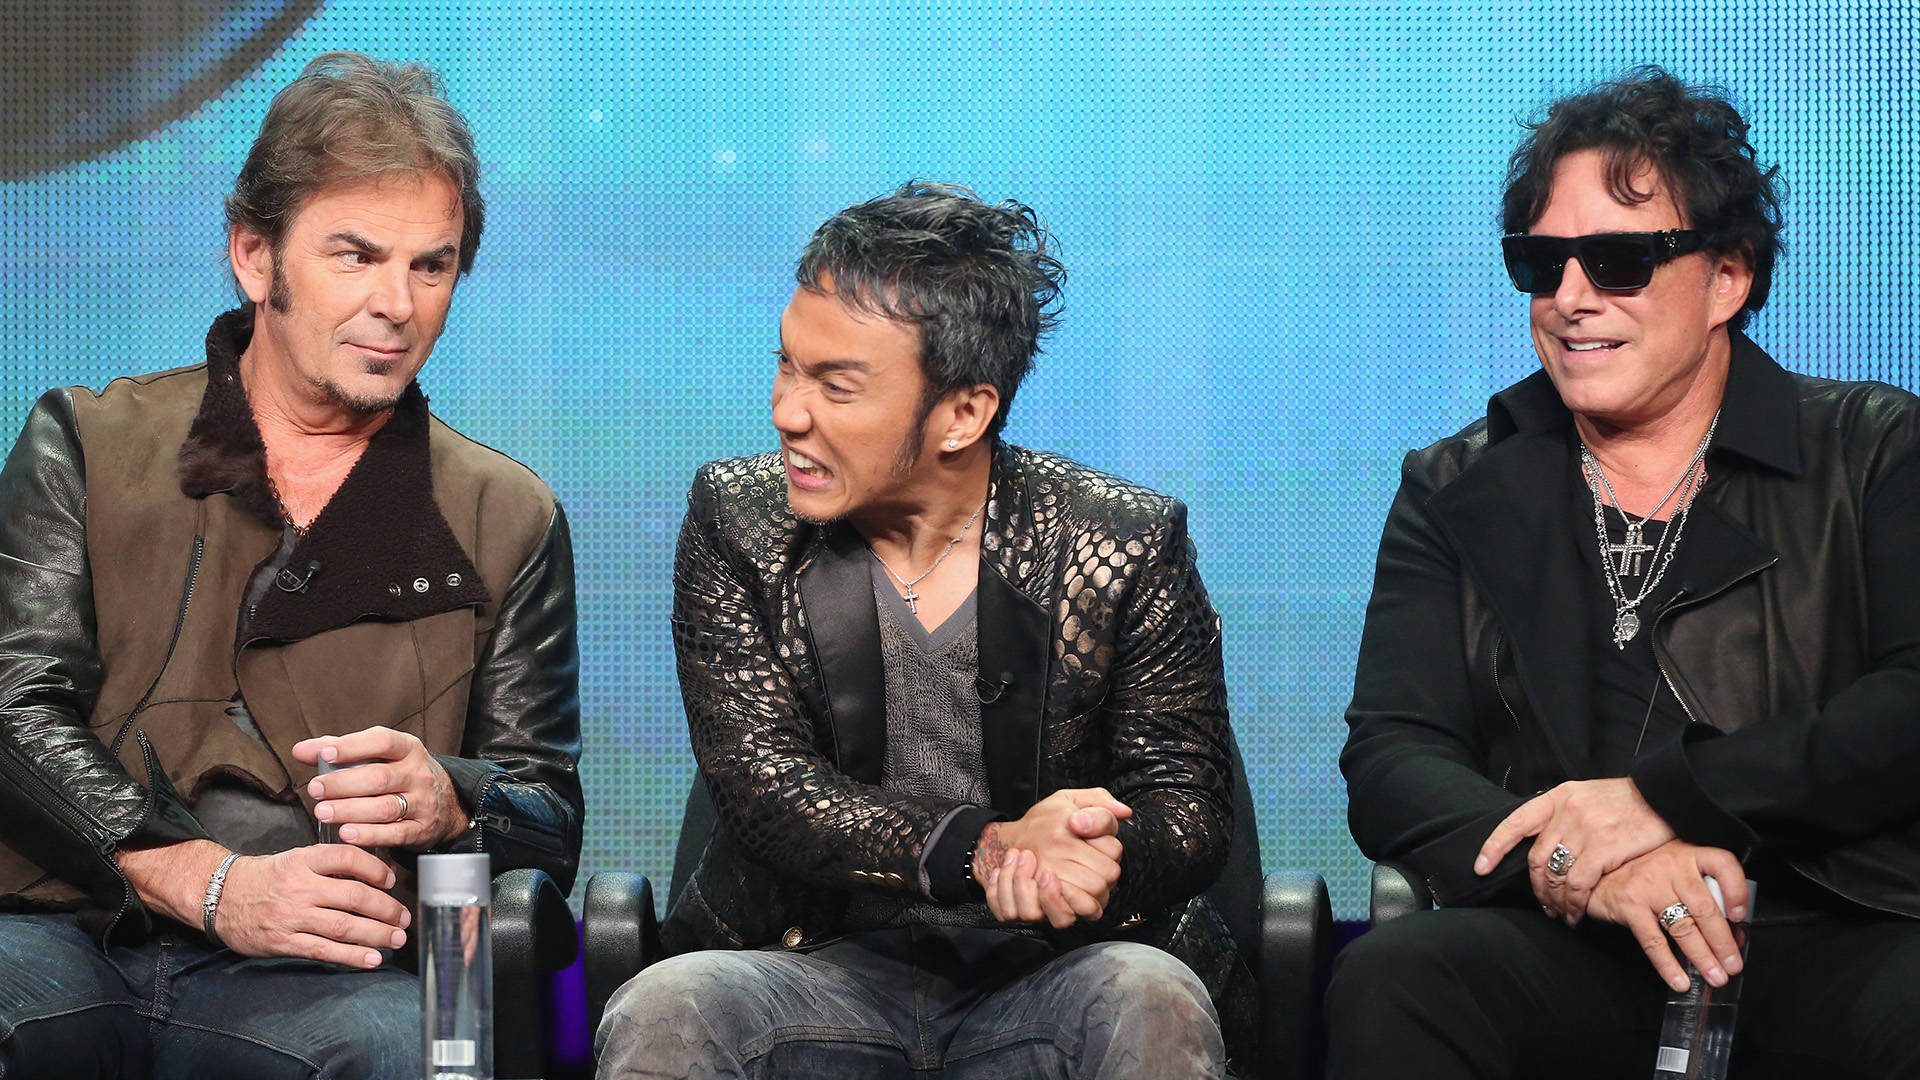 """(L-R) Keyboardist Jonathan Cain, lead vocalist Arnel Pineda and guitarist Neal Schon speak onstage during the """"Don't Stop Believin': Everyman's Journey"""" panel at the PBS portion of the 2013 Summer Television Critics Association tour at the Beverly Hilton Hotel on August 6, 2013 in Beverly Hills, California.   Photo: Frederick M. Brown/Getty Images"""